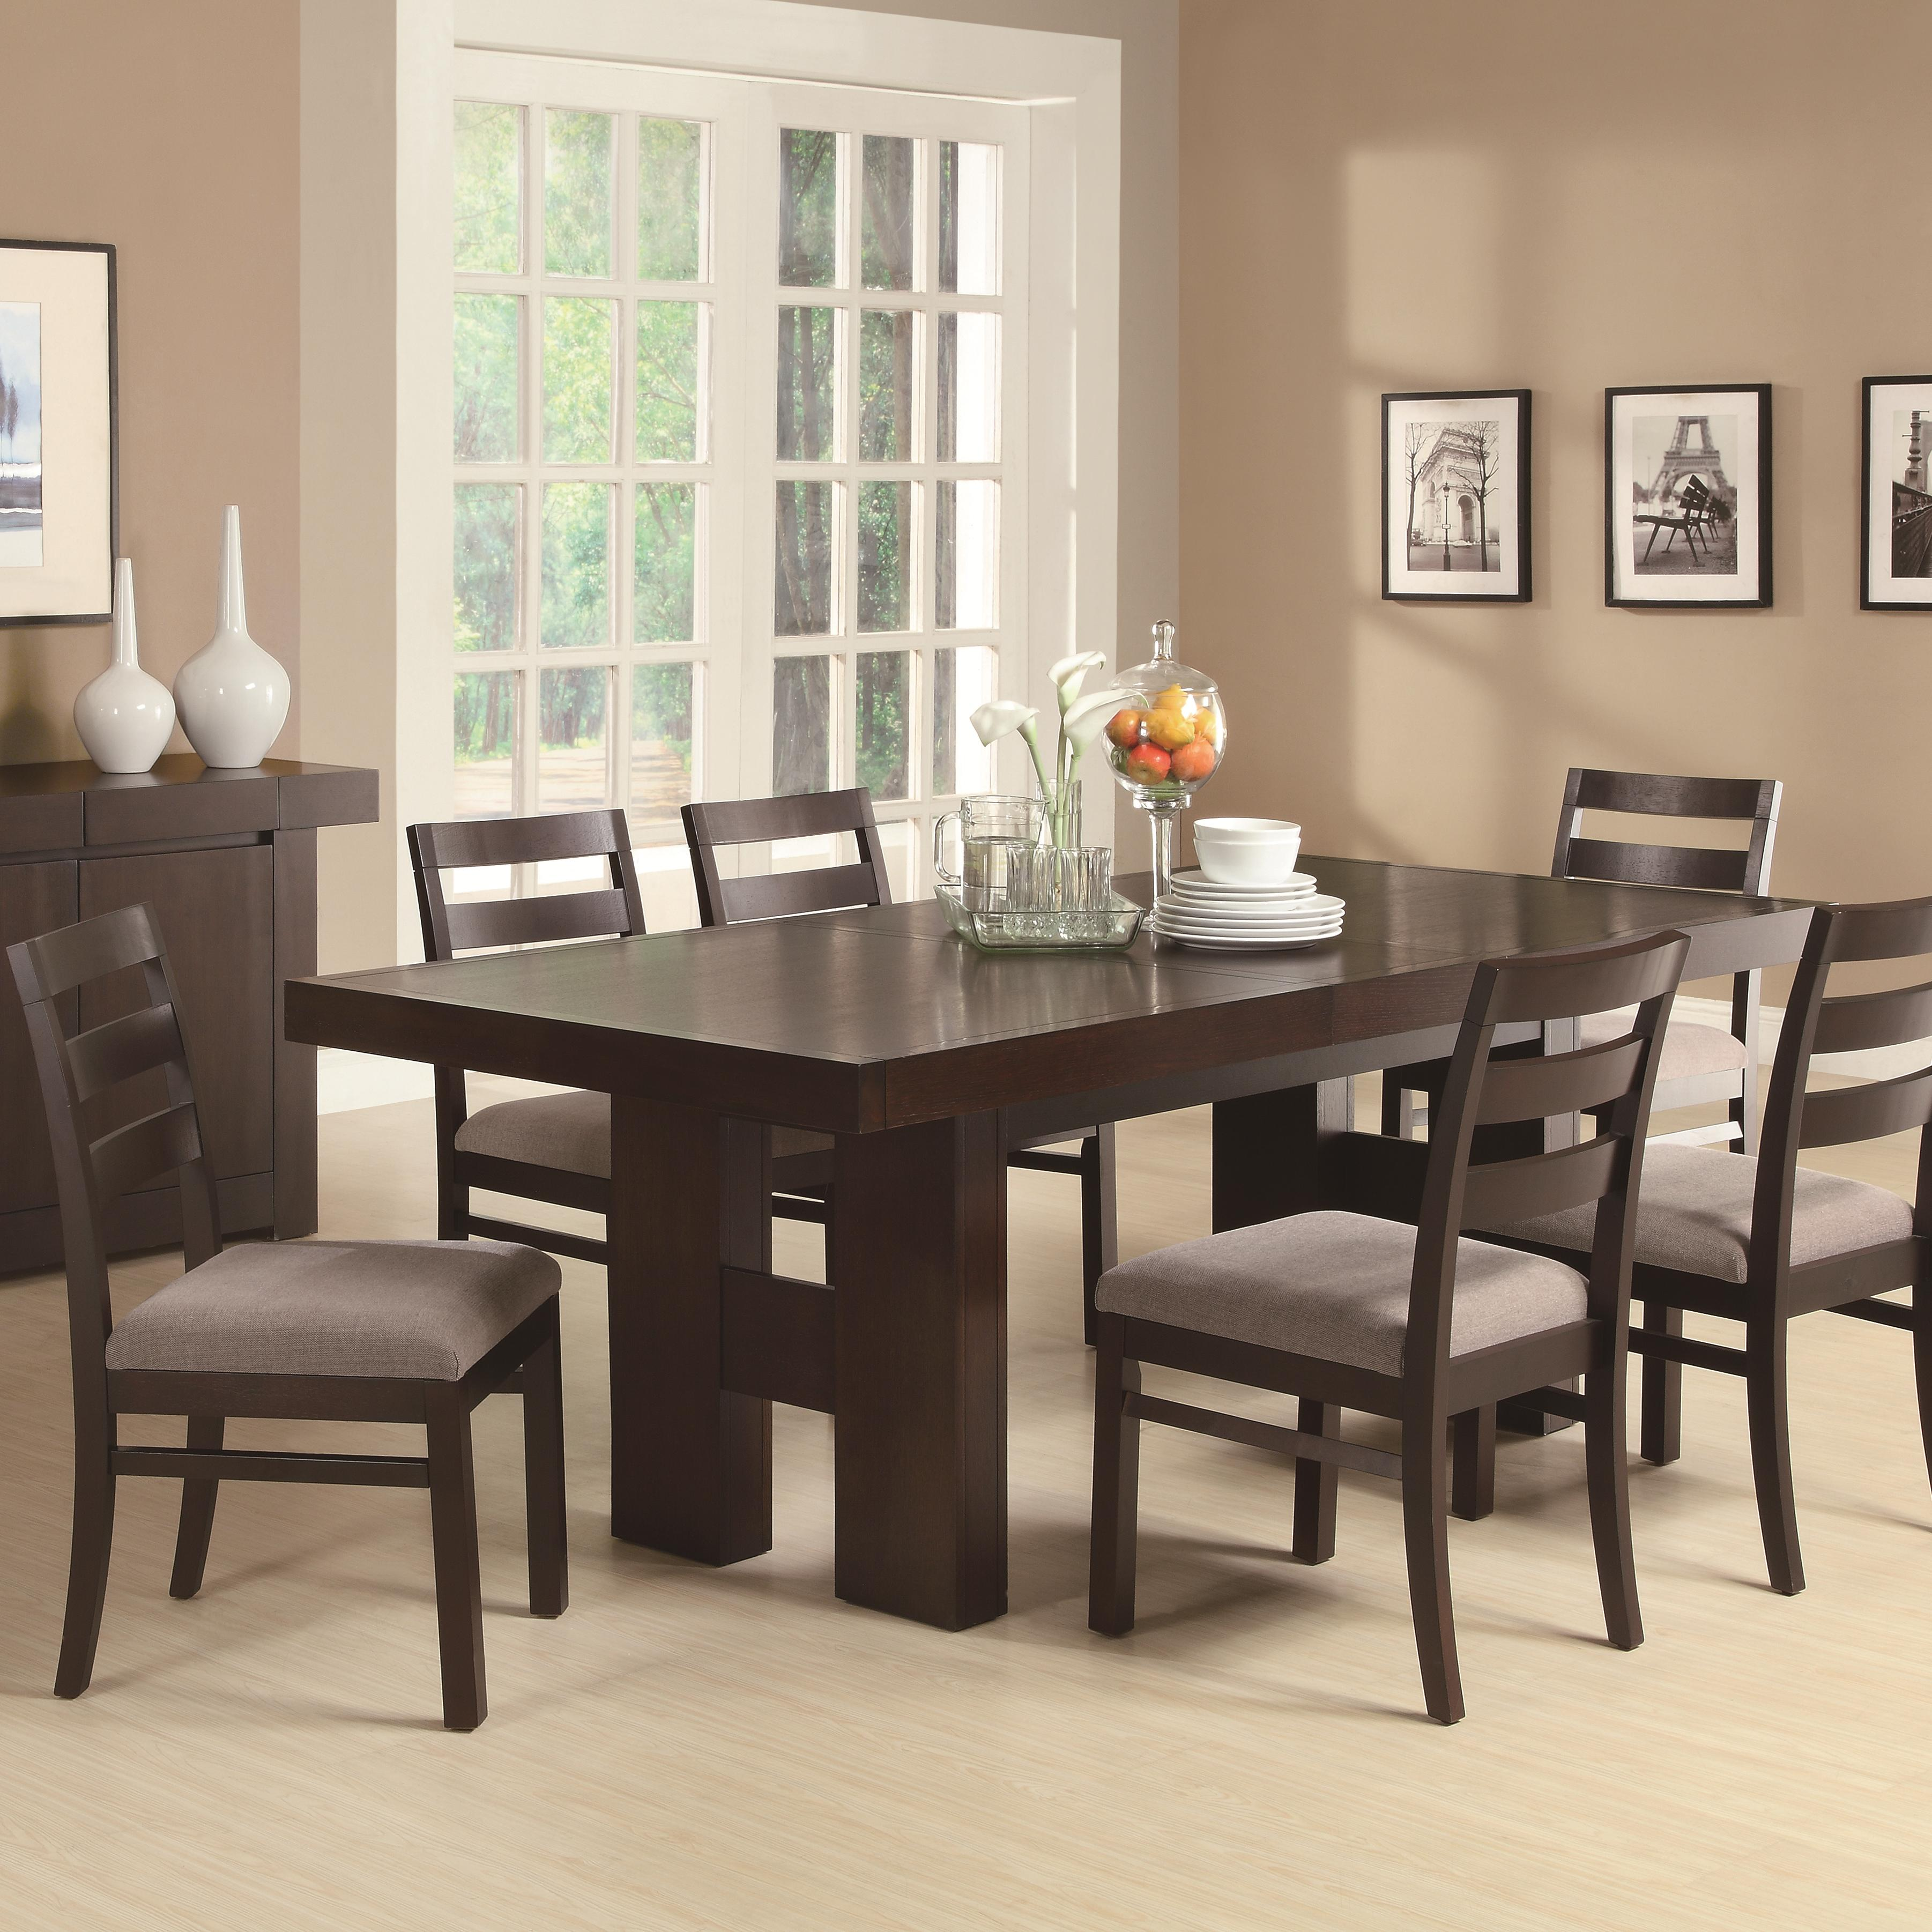 Coaster Dabny 7 Piece Dining Set - Item Number: 103101+103102x6